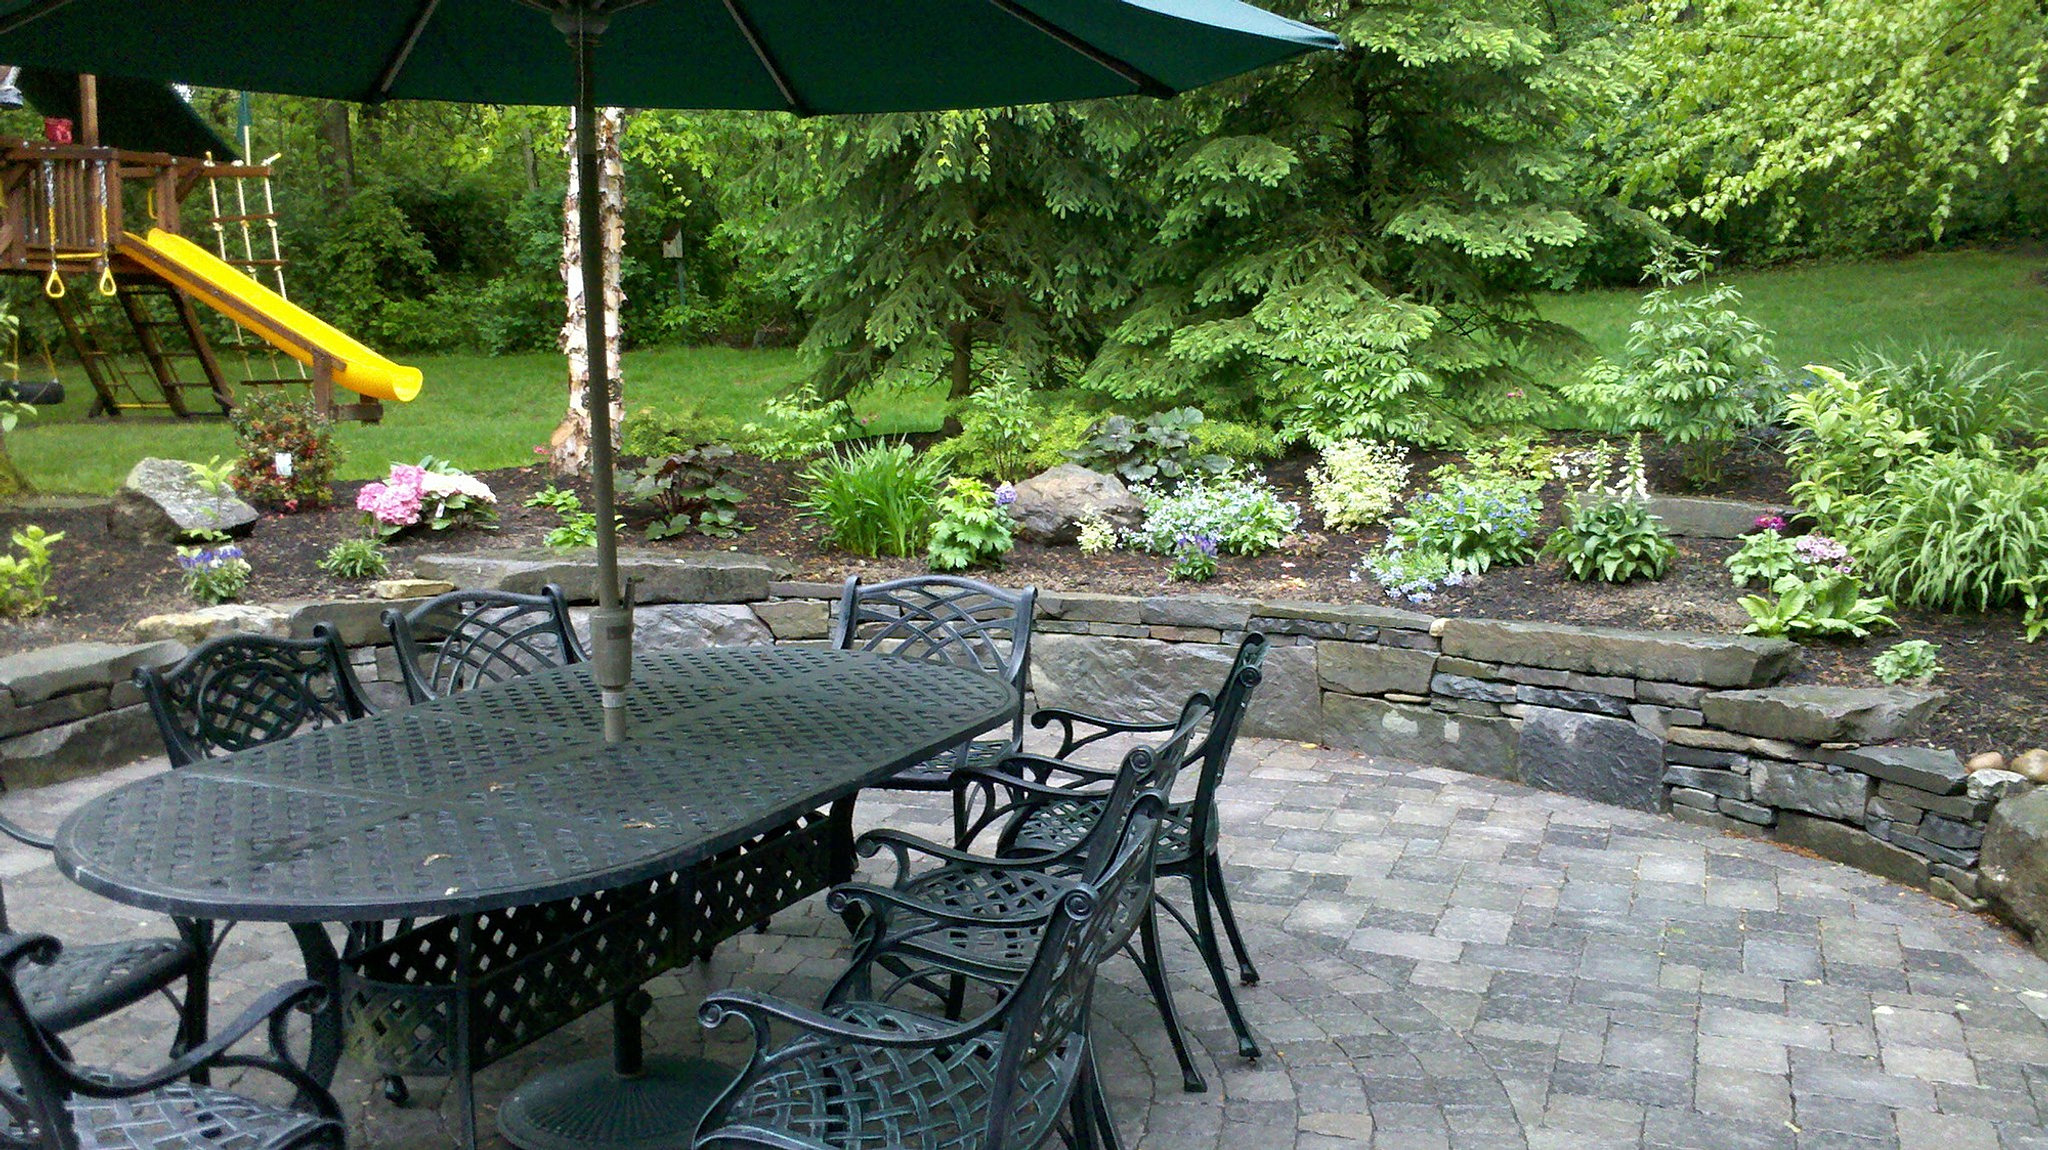 Wet Area Conversion, Redesigned With Drainage And Circular Inset, Brick  Paver Patio, Shade Perennial Garden, Deer Resistant.